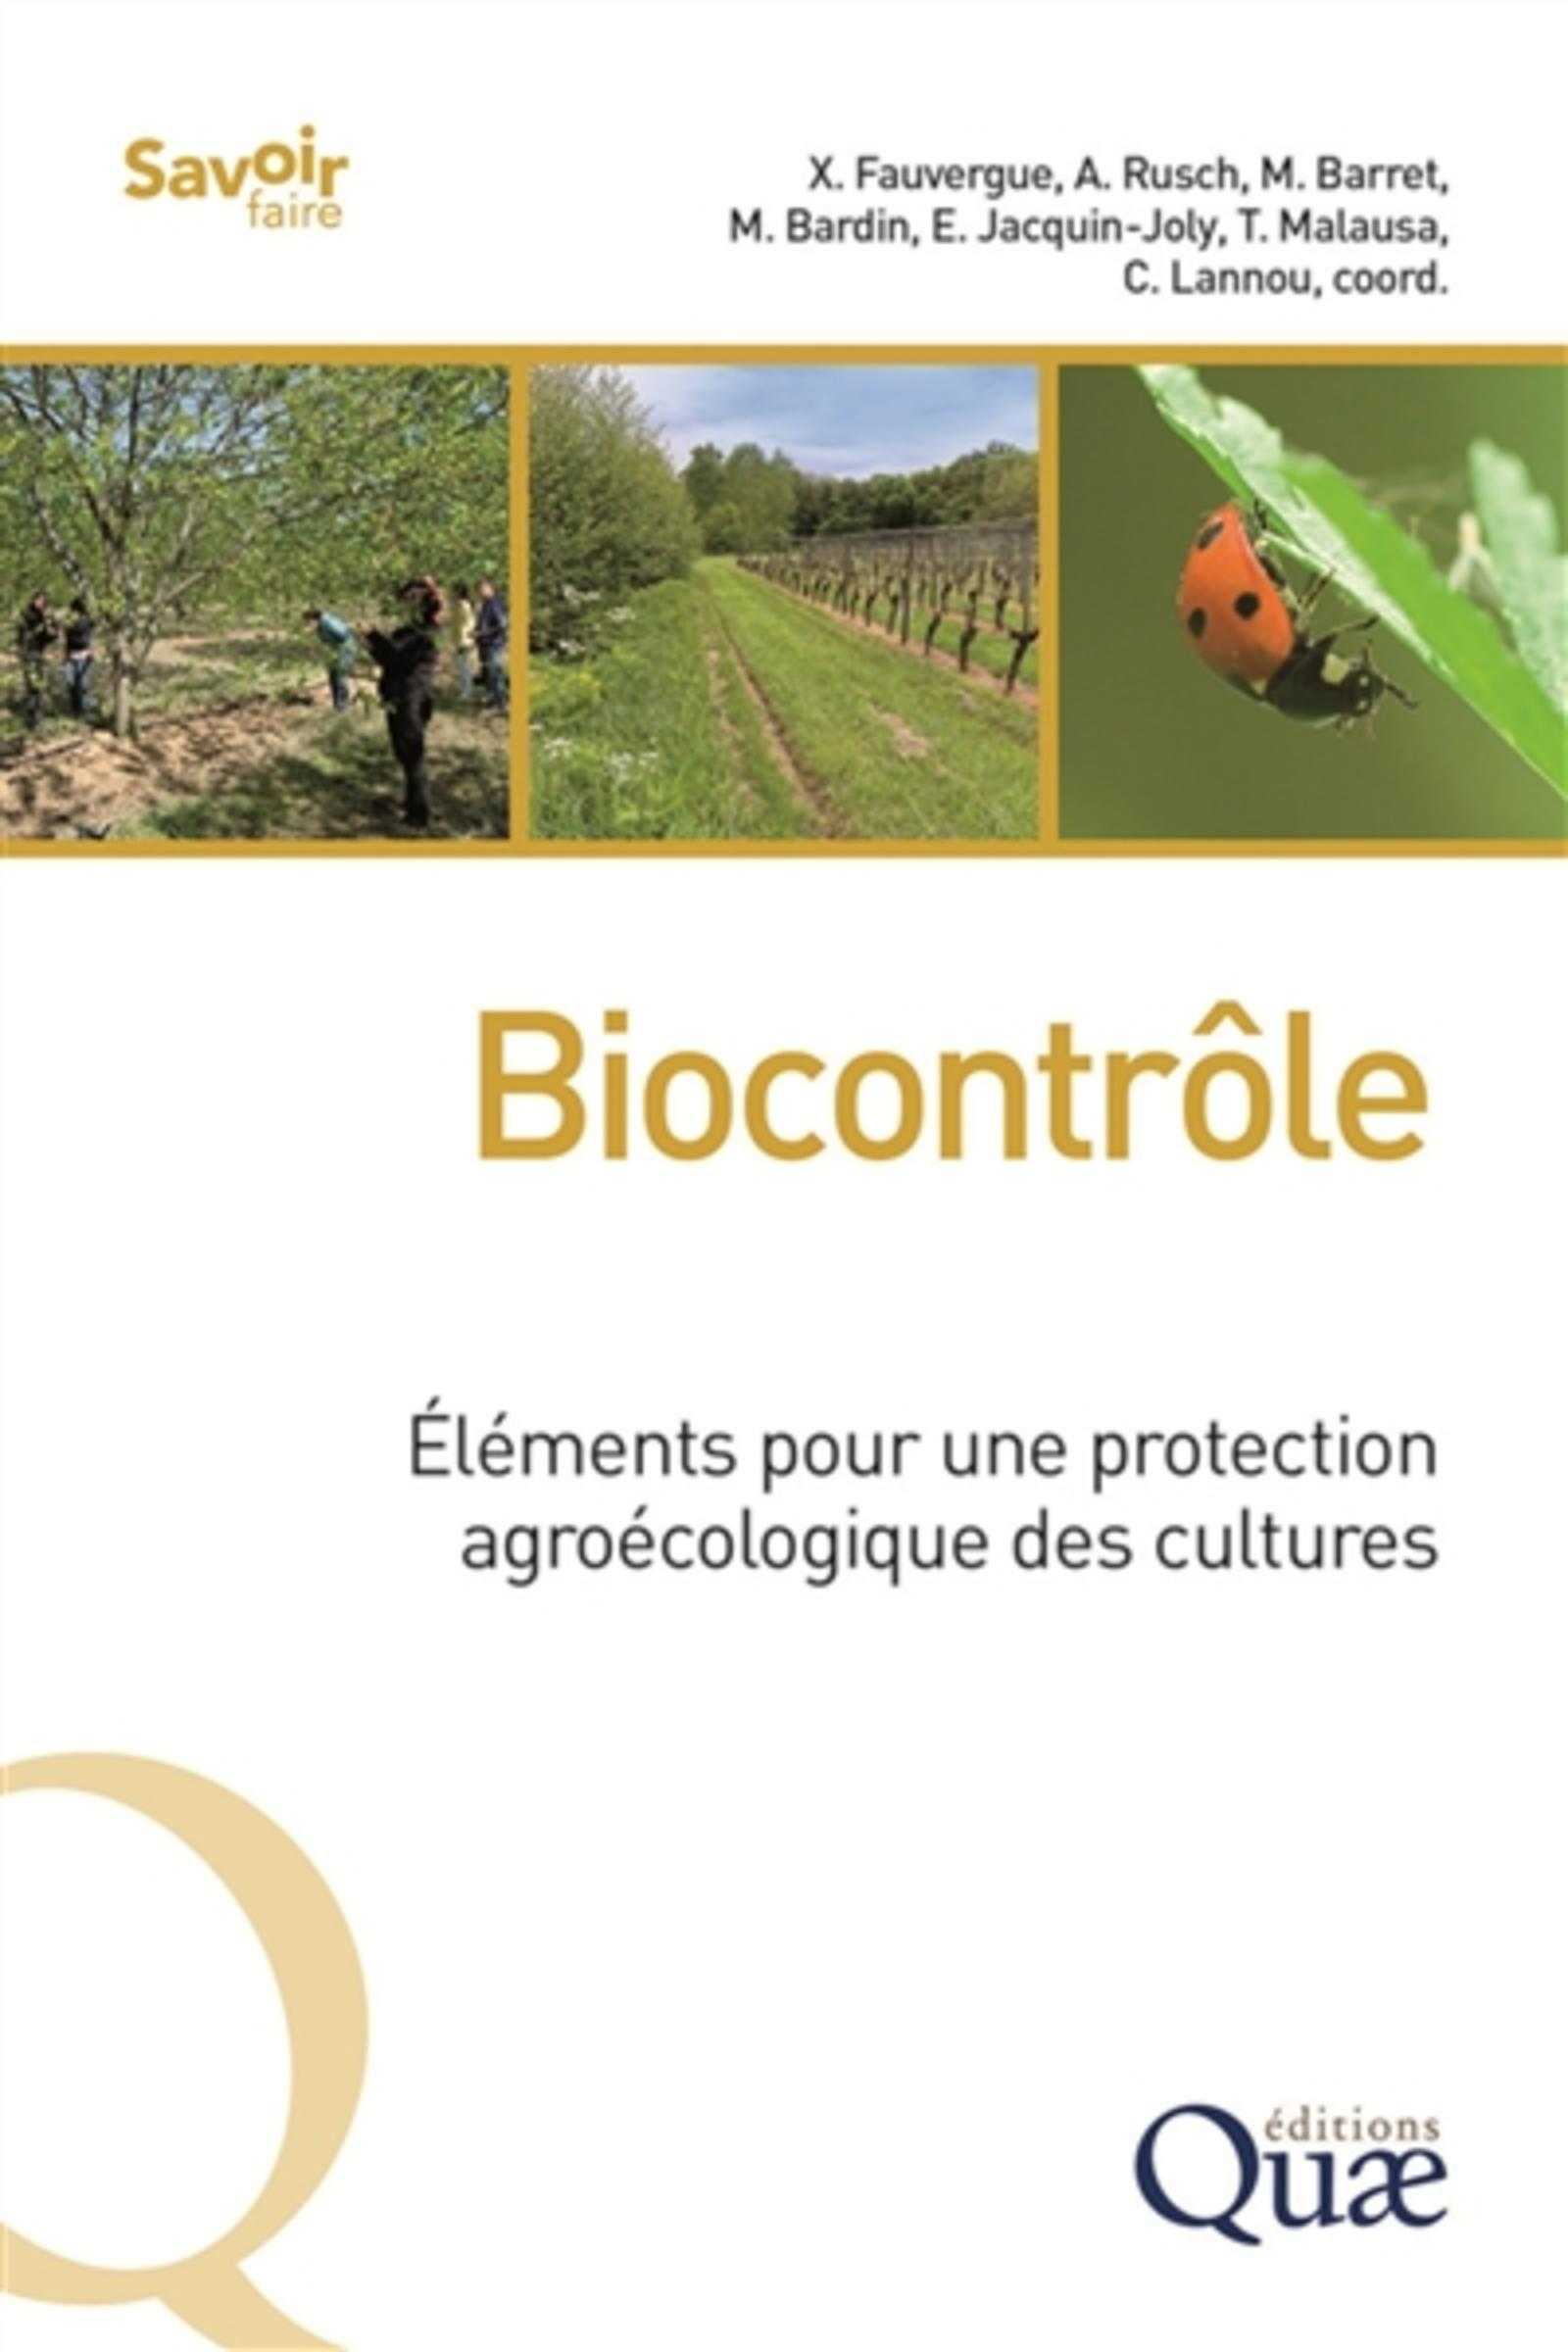 BIOCONTROLE - ELEMENTS POUR UNE PROTECTION AGROECOLOGIQUE DES CULTURES